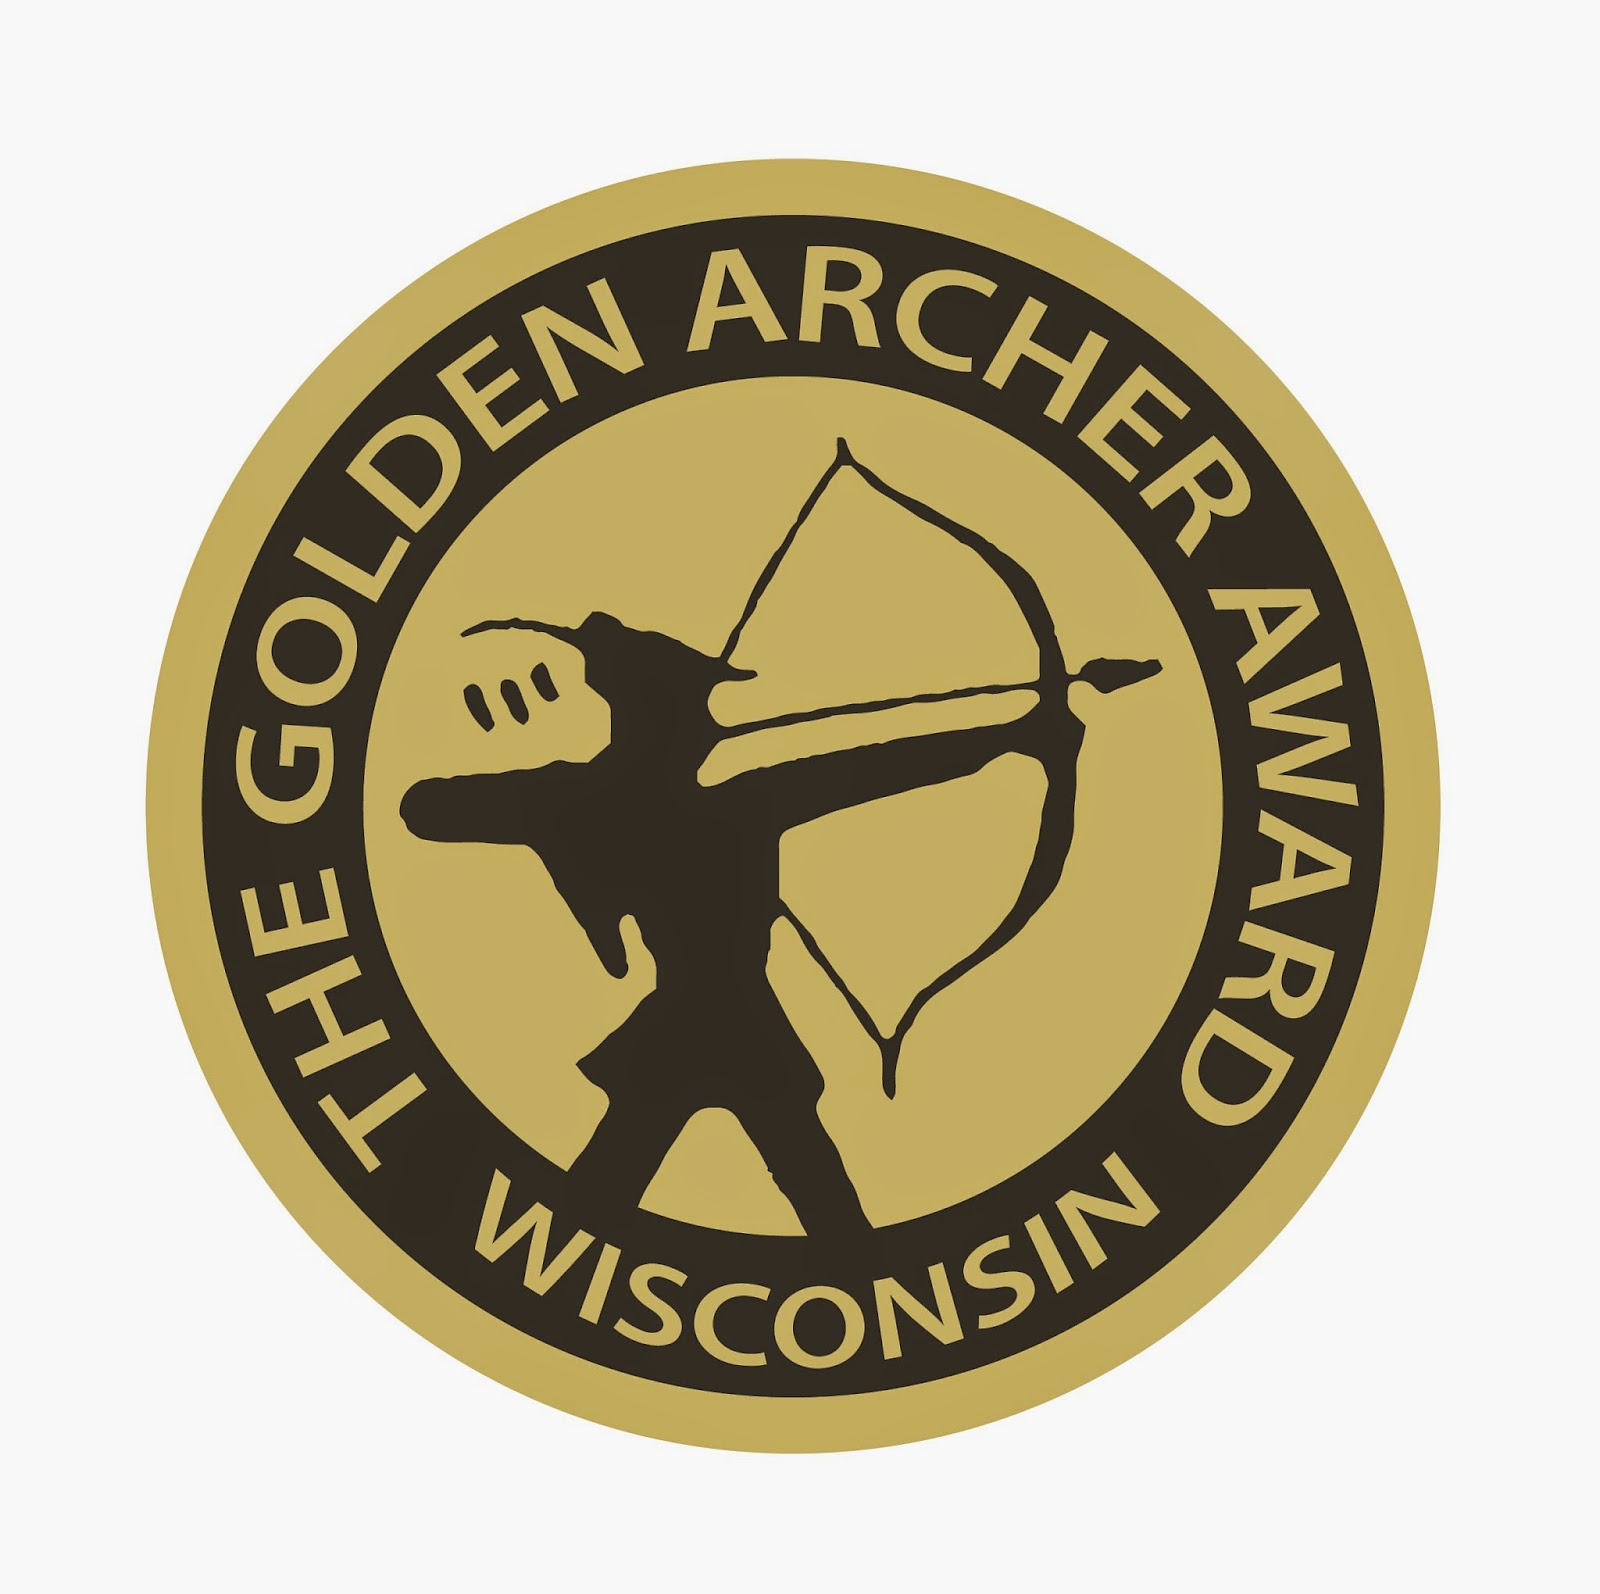 Link to Golden Archer list of nominees